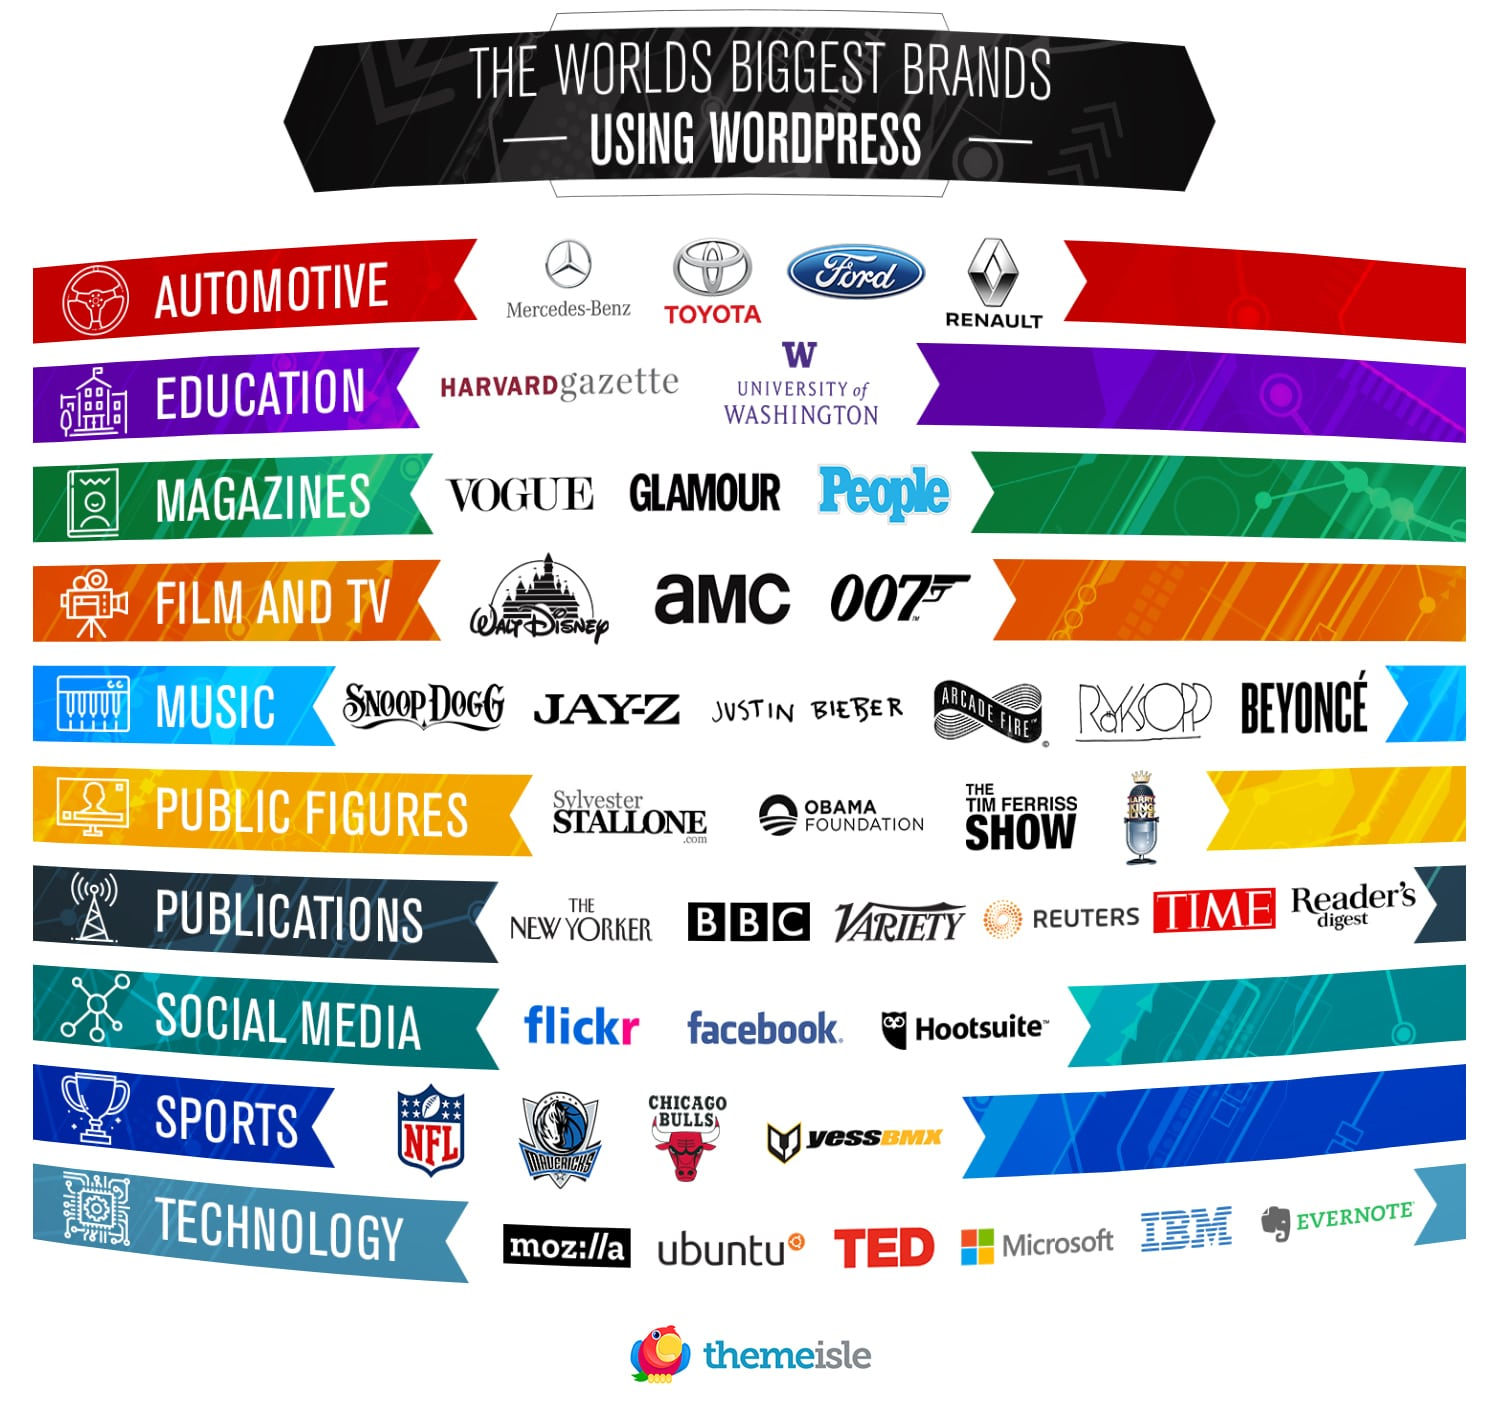 famous brands using WordPress